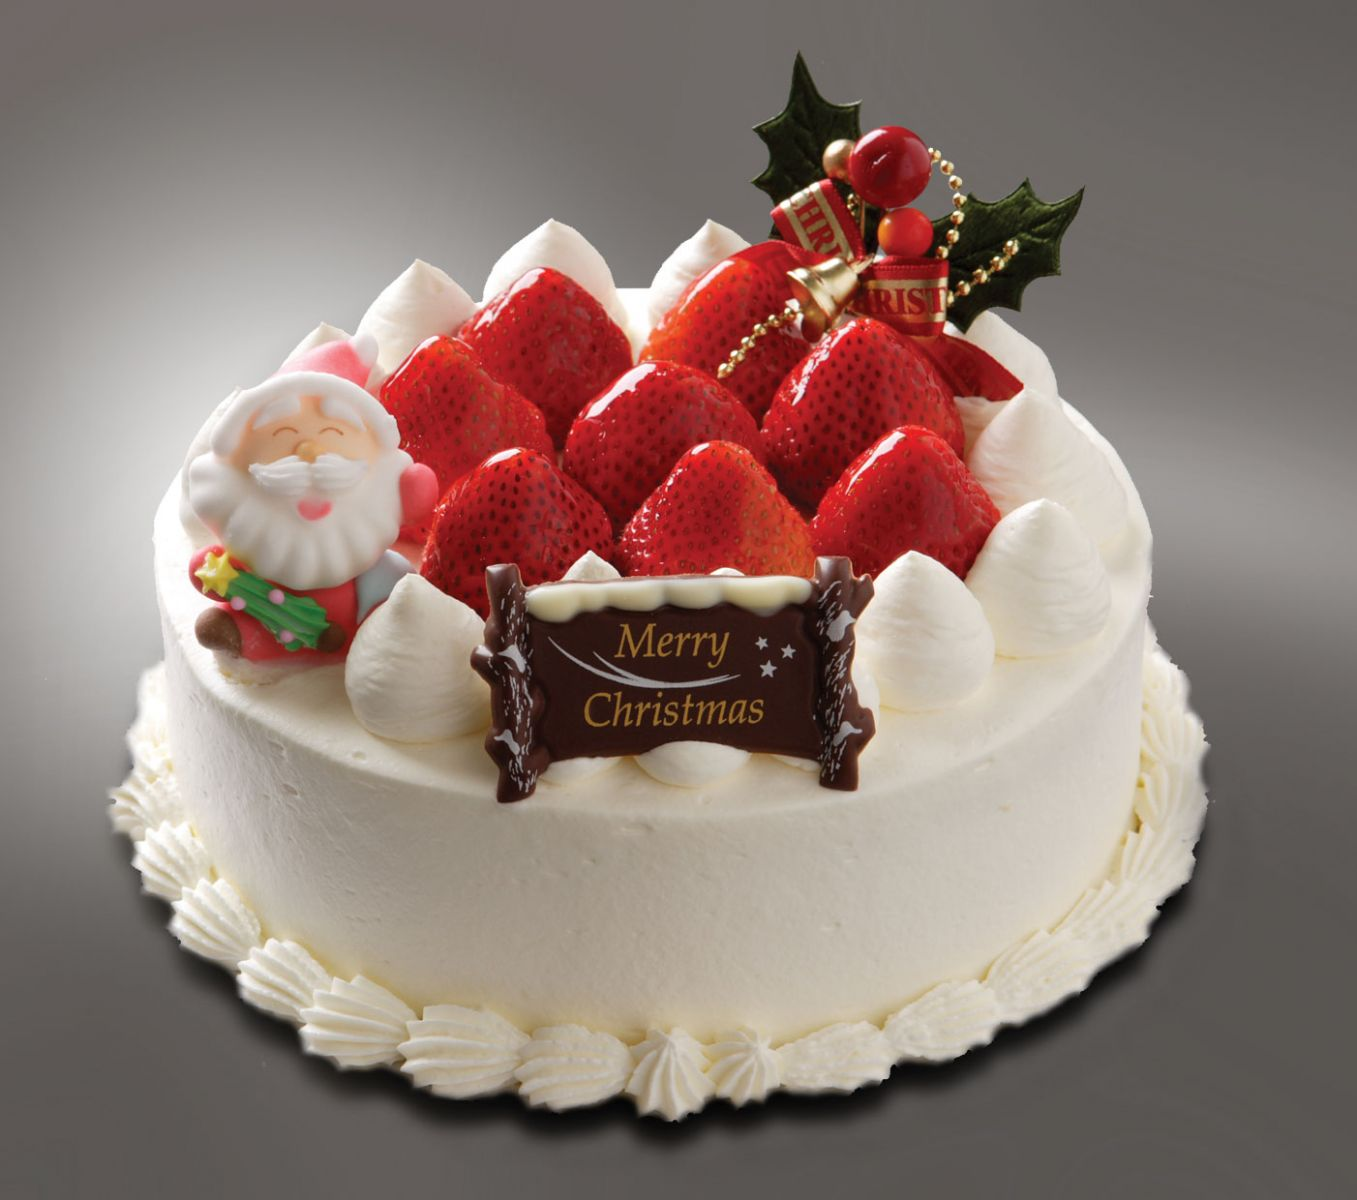 5 Popular Desserts For Christmas Eve By Nithya